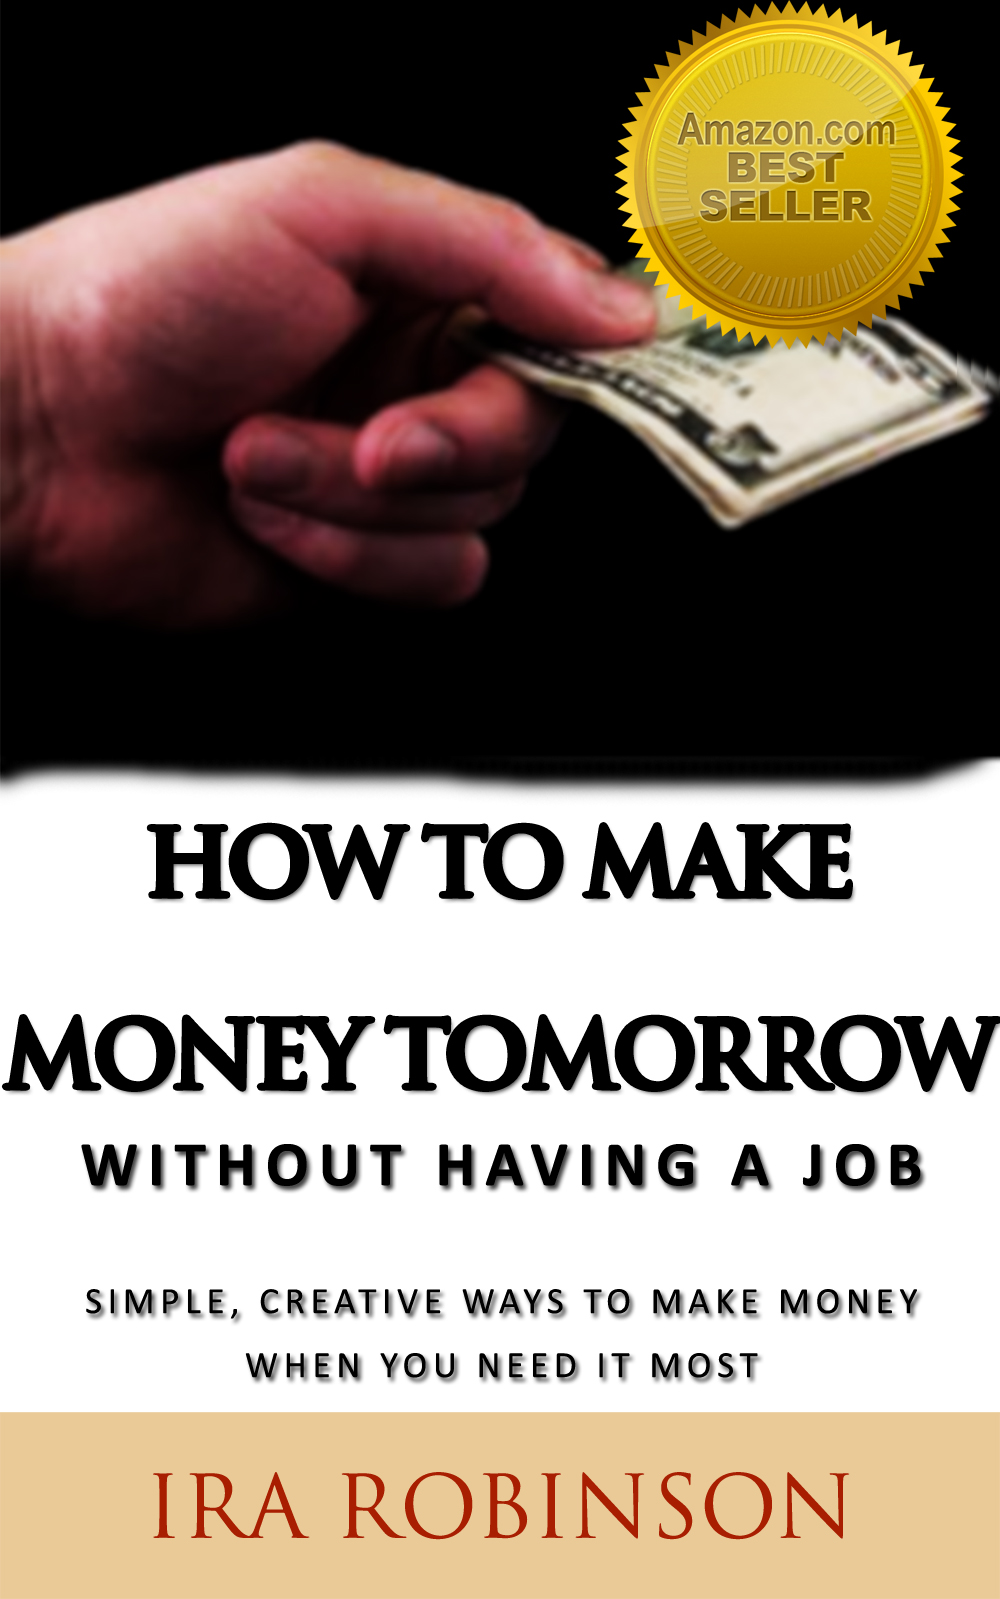 How to Make Money Tomorrow (Without Having a Job)